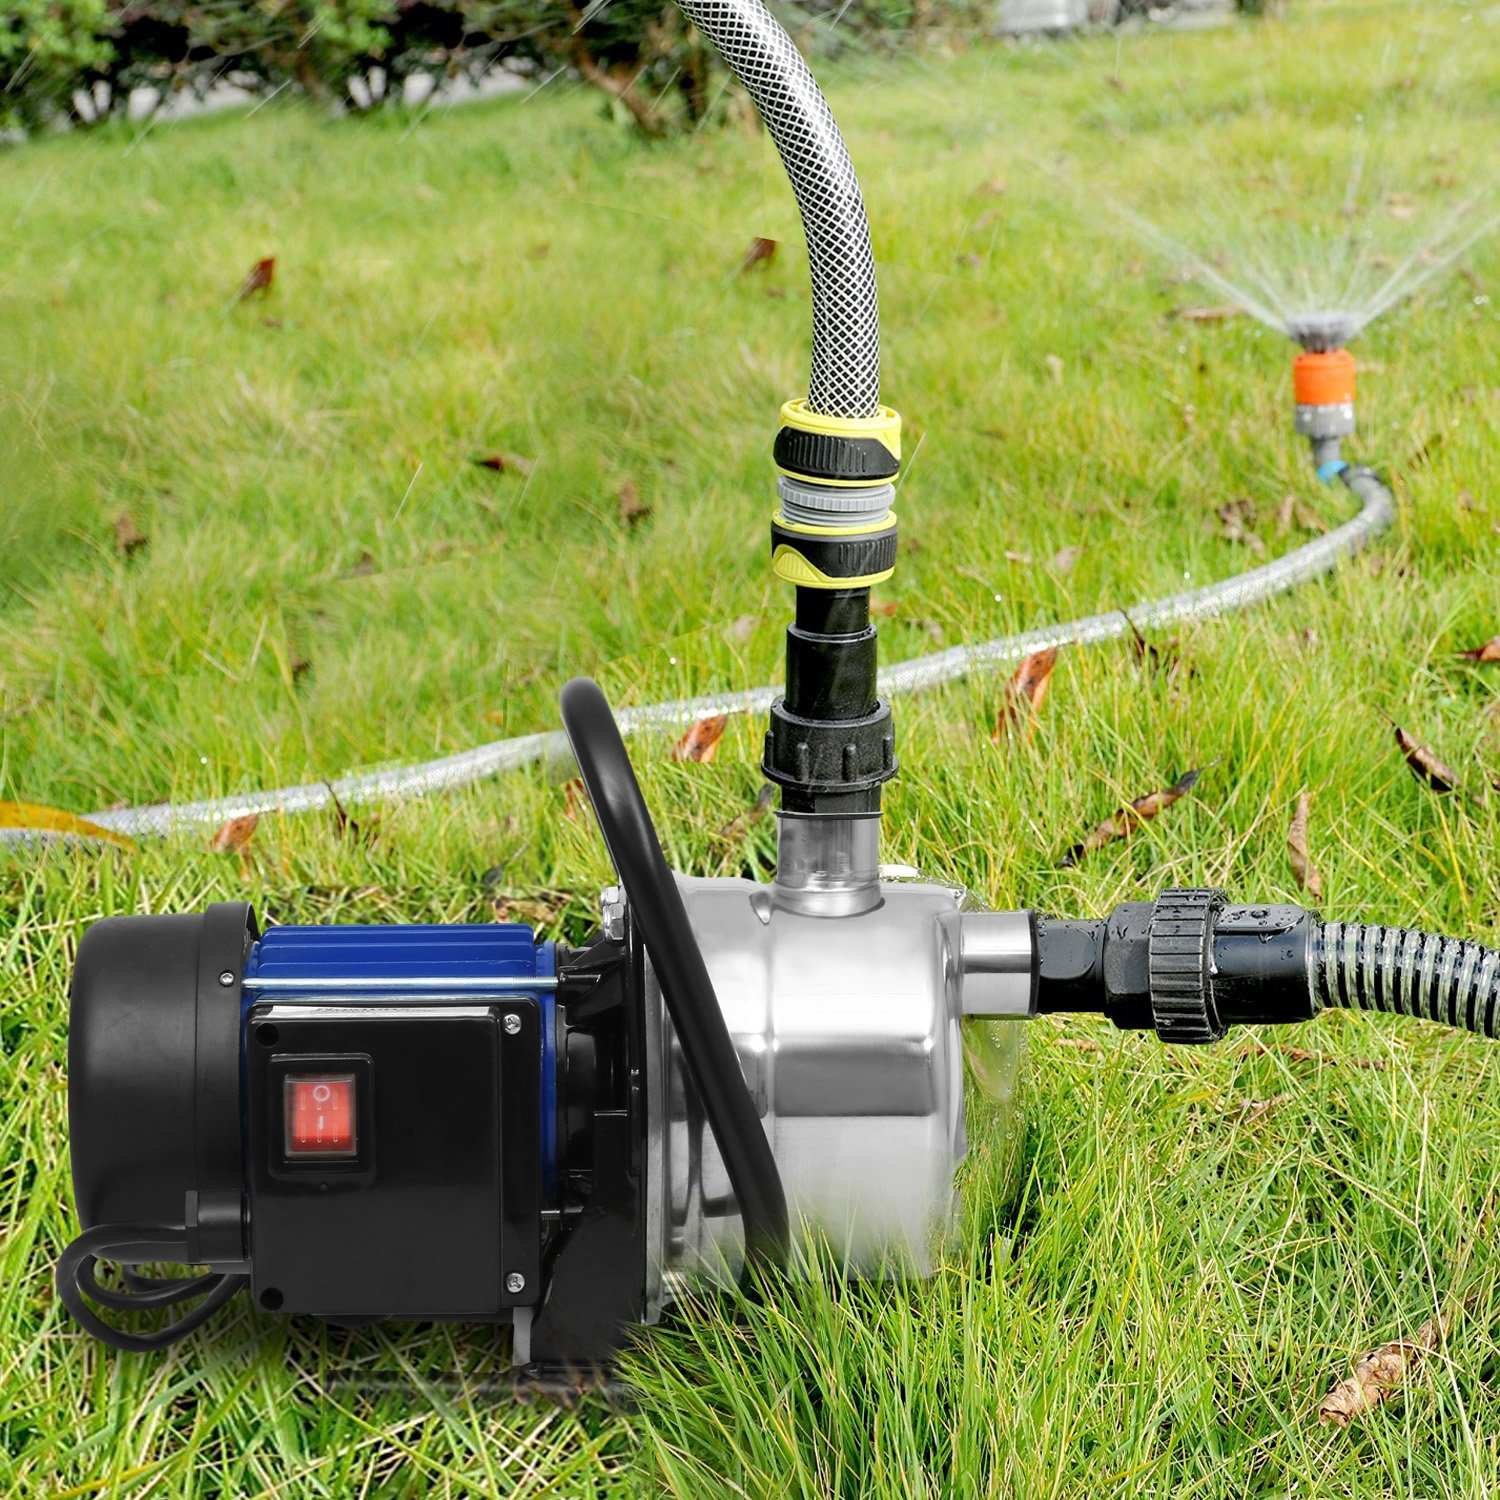 The Best Sprinkler Pump For The Money Editor S 2019 Top